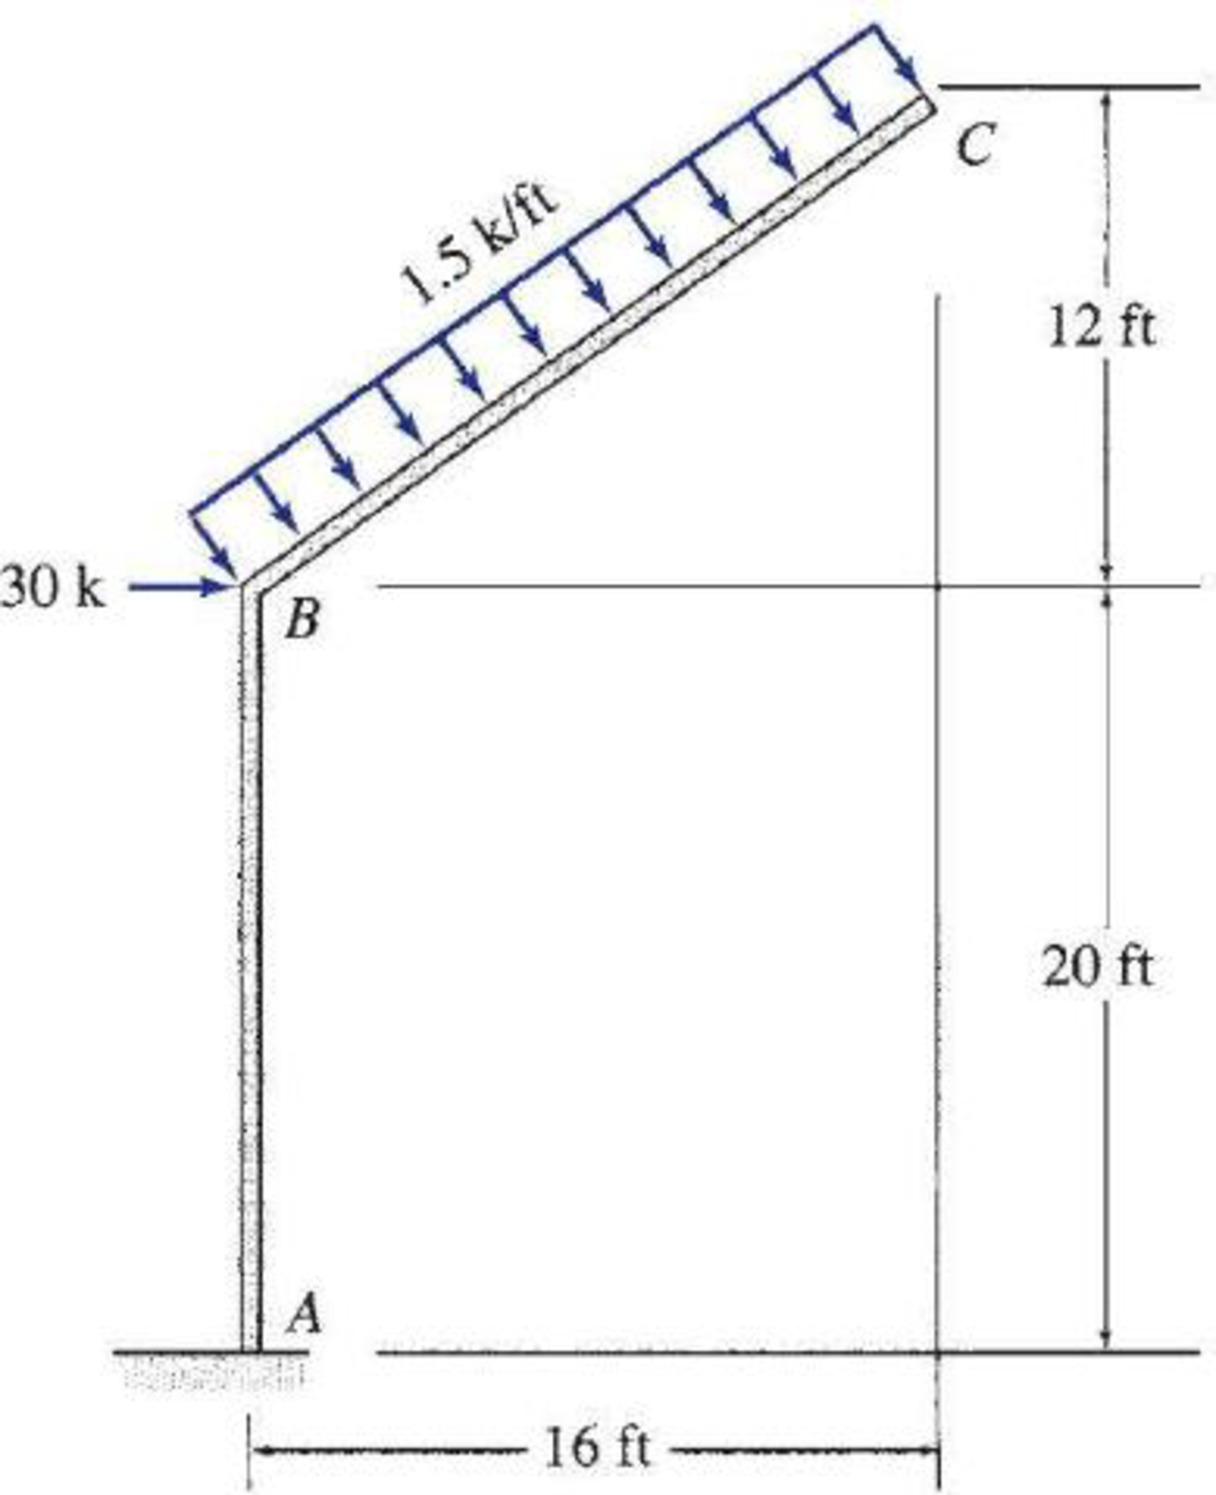 Chapter 5, Problem 63P, 5.57 through 5.71 Draw the shear, bending moment, and axial force diagrams and the qualitative